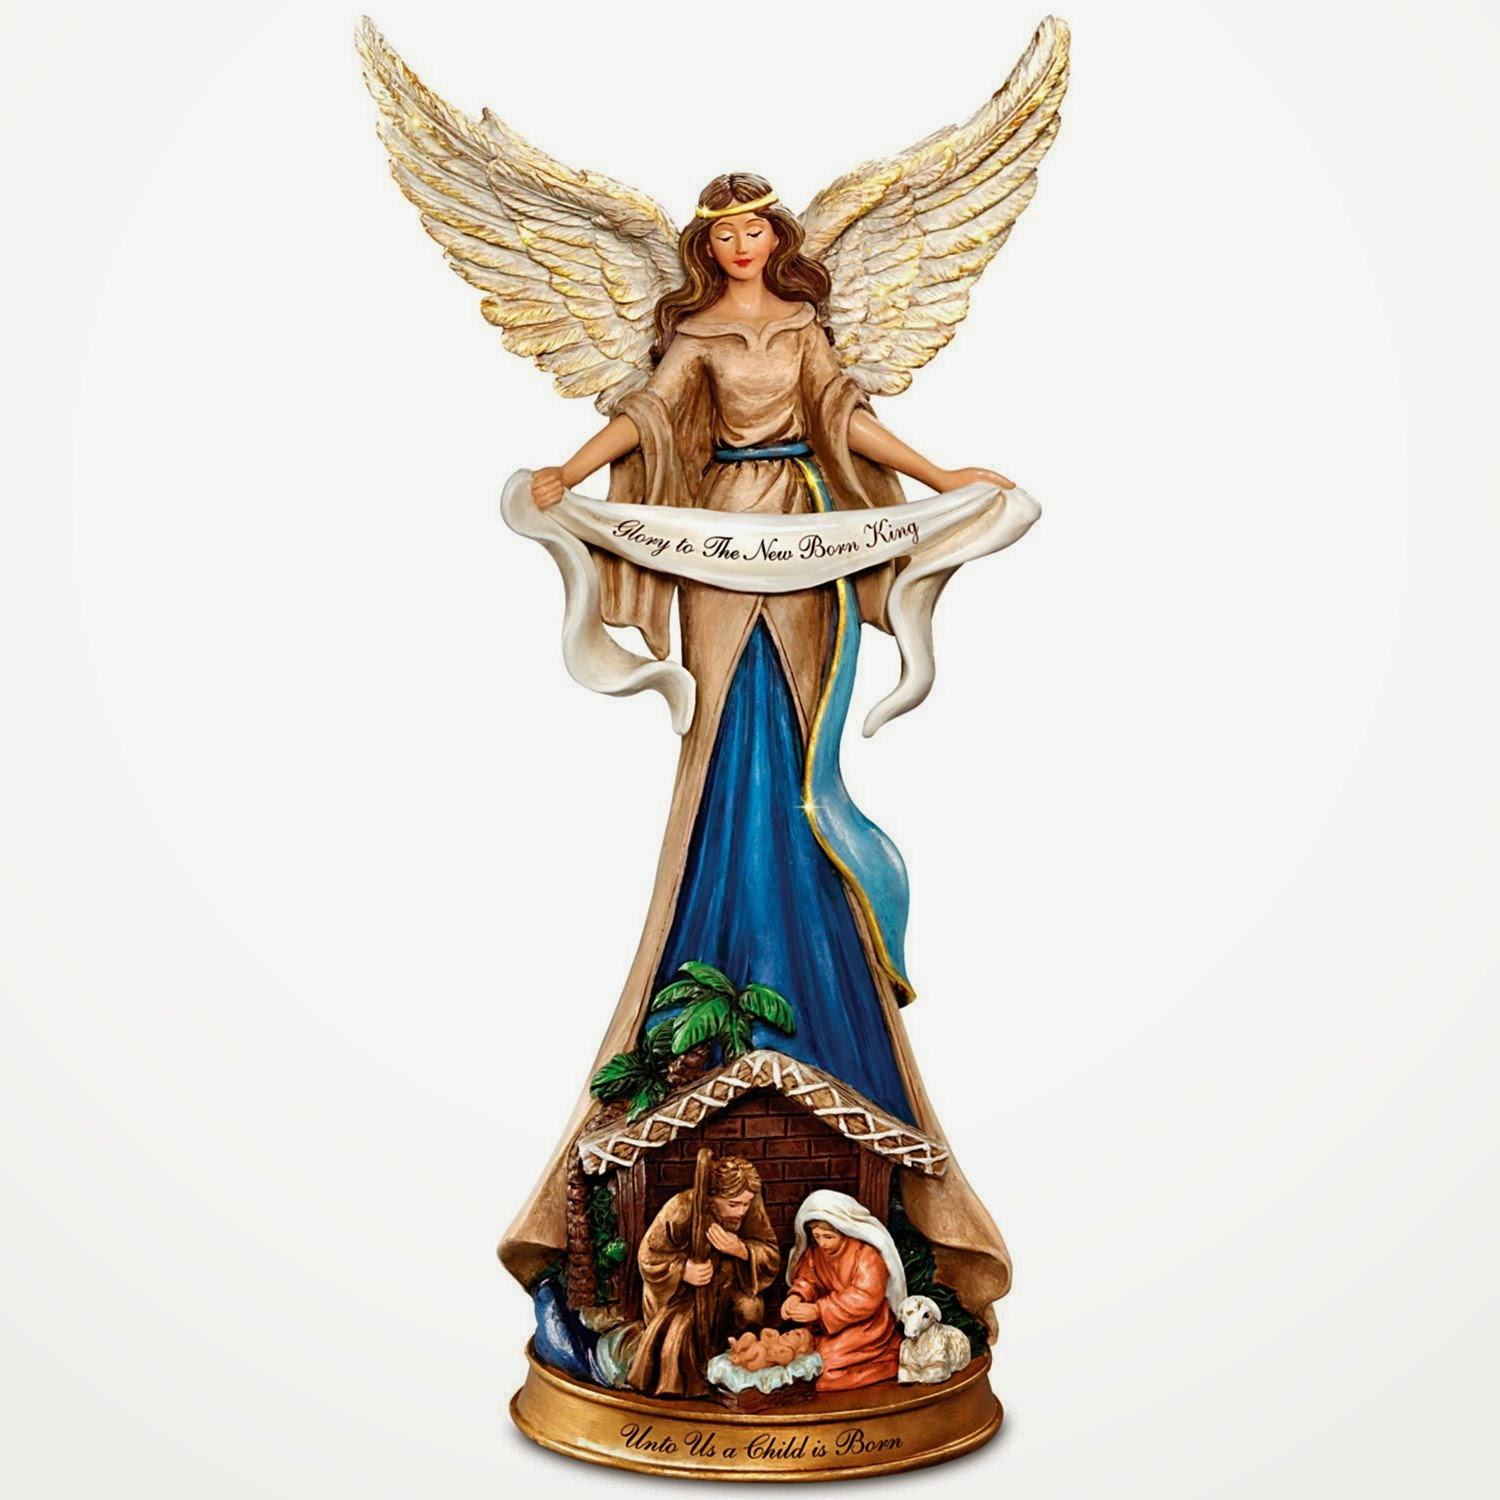 http://www.amazon.com/Thomas-Kinkade-Angel-Nativity-Figurine/dp/B00P81UN4Y%3FSubscriptionId%3D14H876SFAKFS0EHBYQ02%26tag%3Dhubacct4139-20%26linkCode%3Dxm2%26camp%3D2025%26creative%3D165953%26creativeASIN%3DB00P81UN4Y